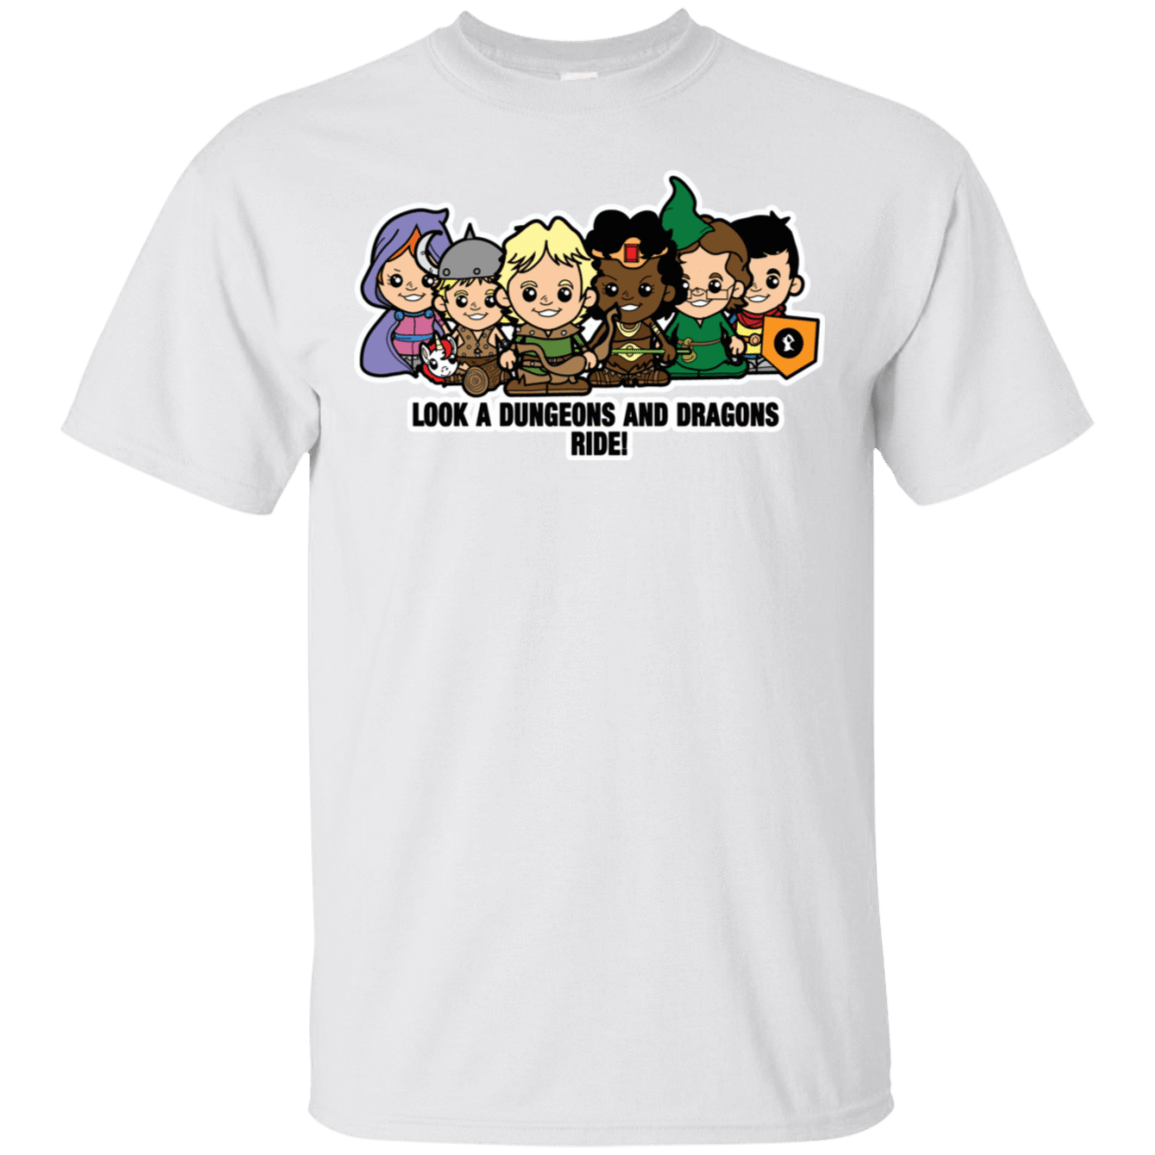 Lil Dungeons and Dragons T-Shirt